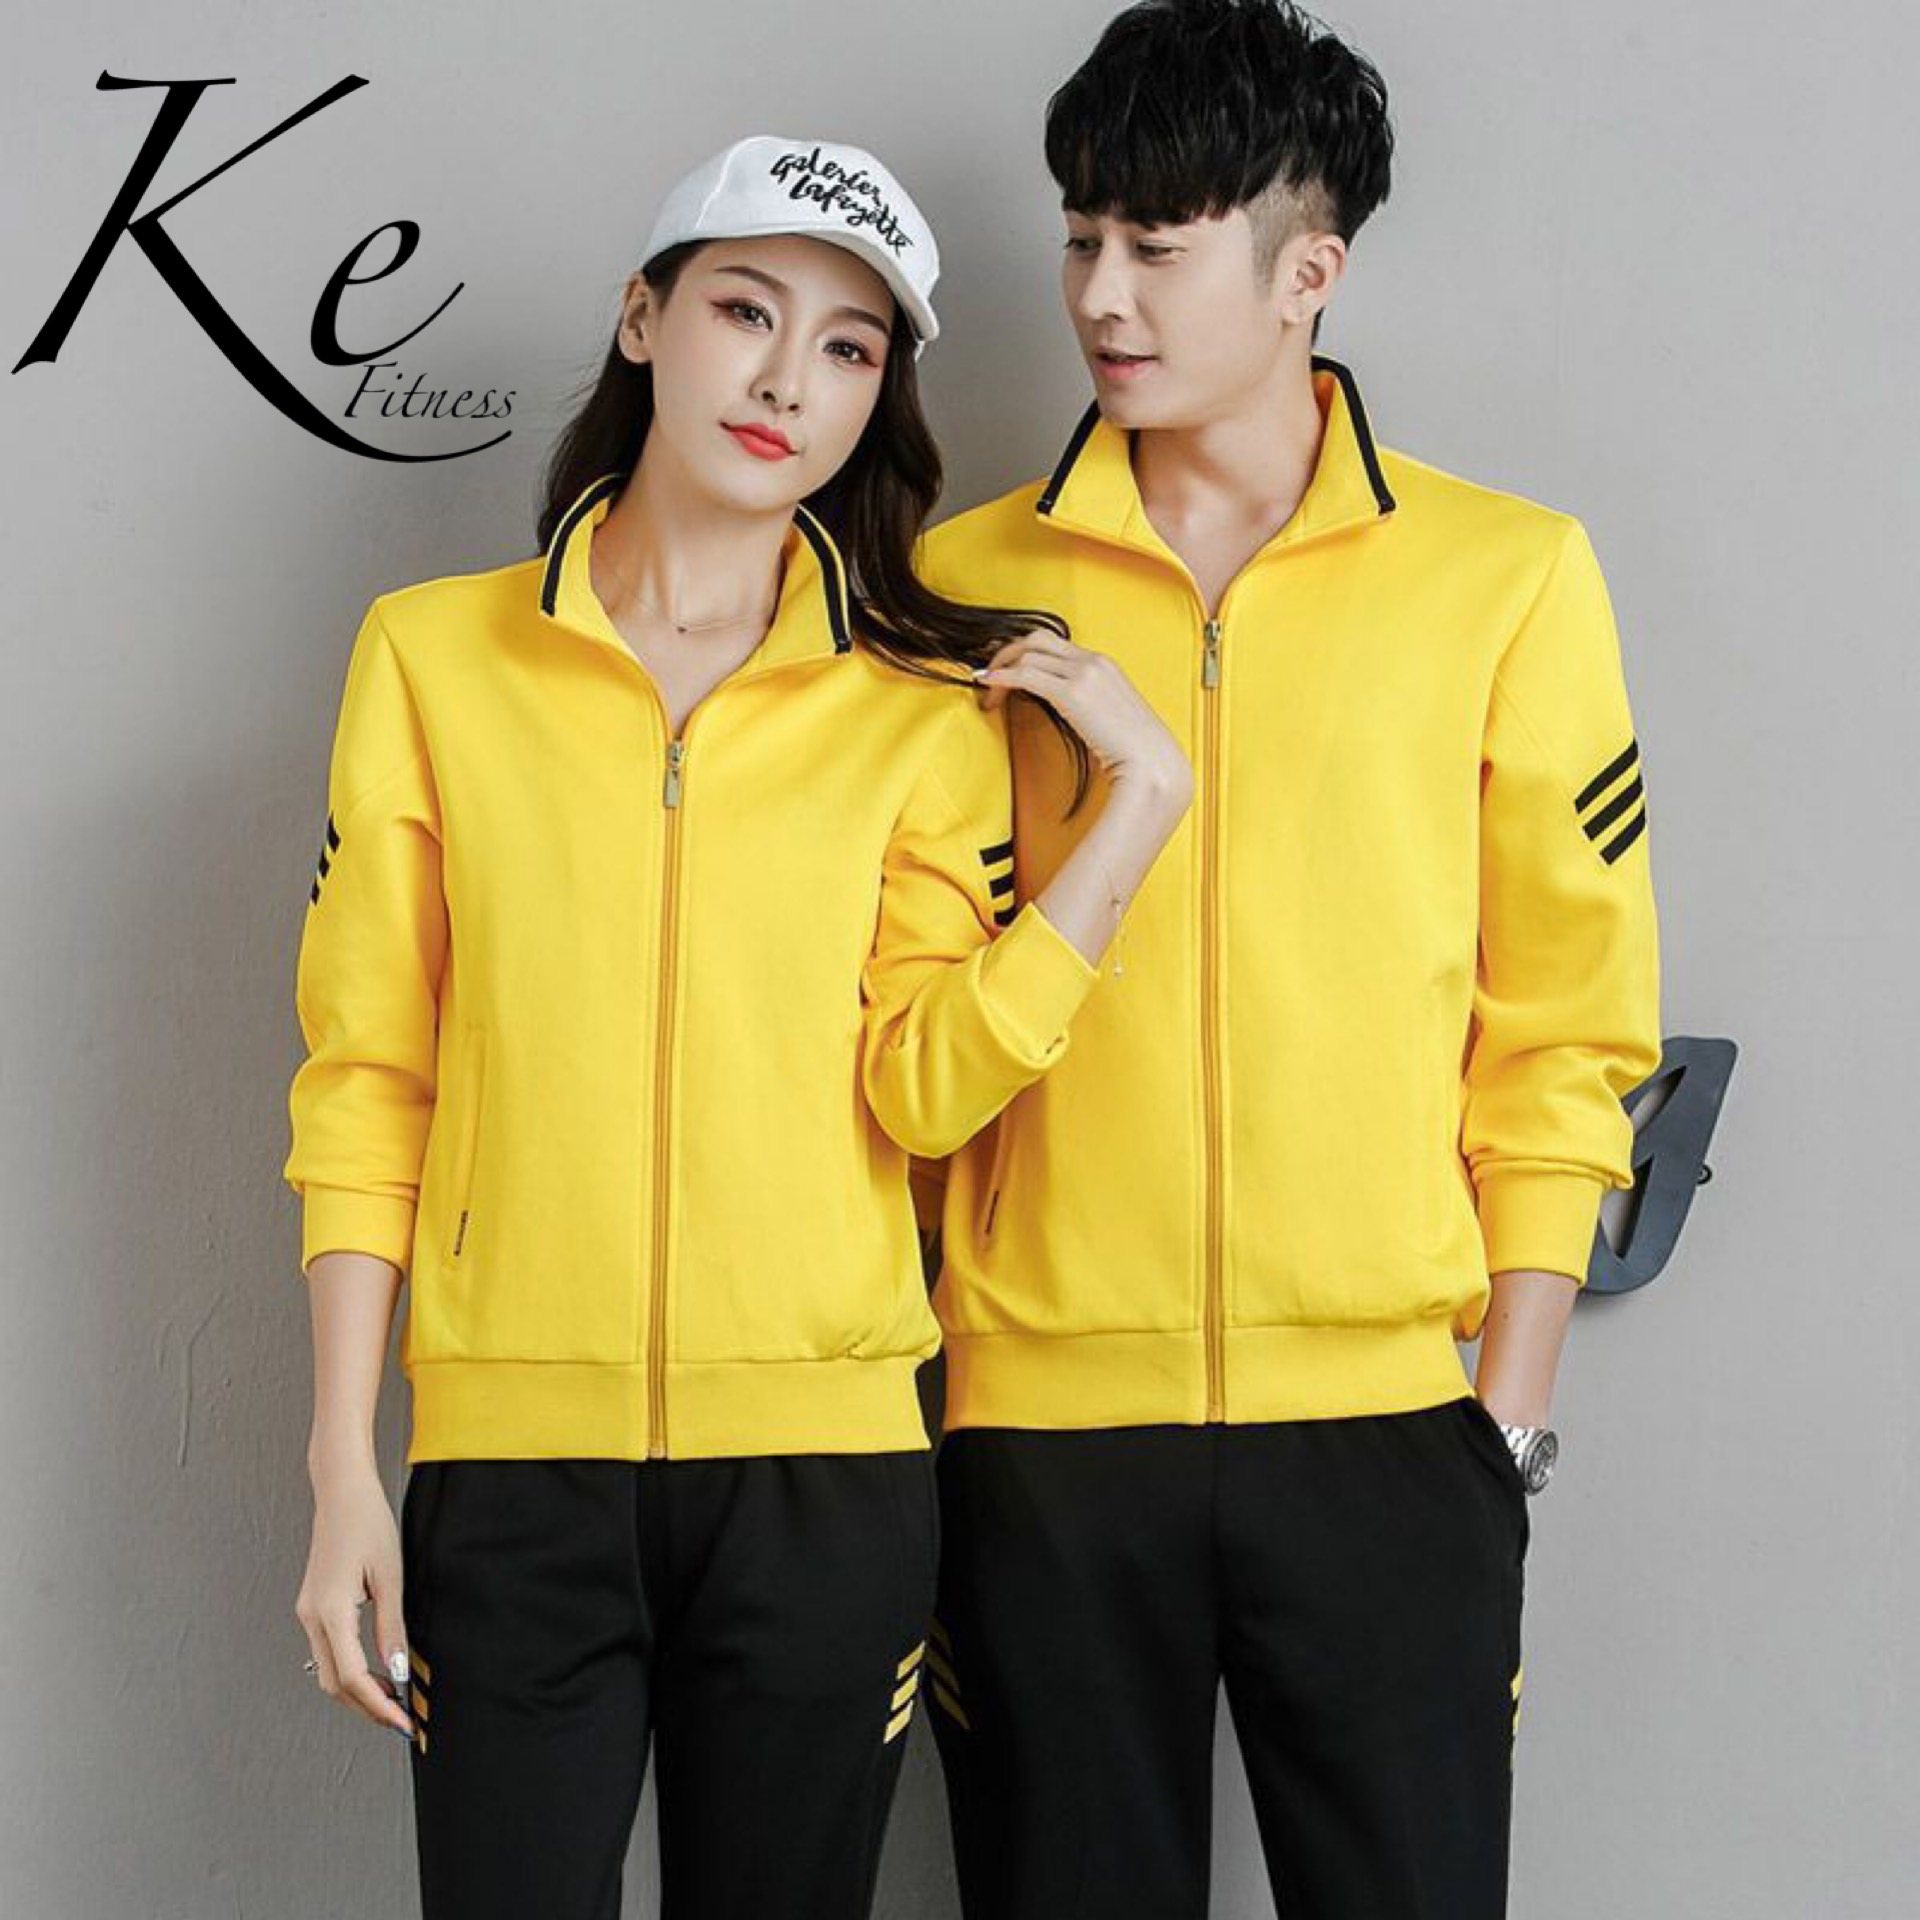 KE New sport set man woman couples tracksuit big plus extra size running leasure black red yellow striped sleeve and pants